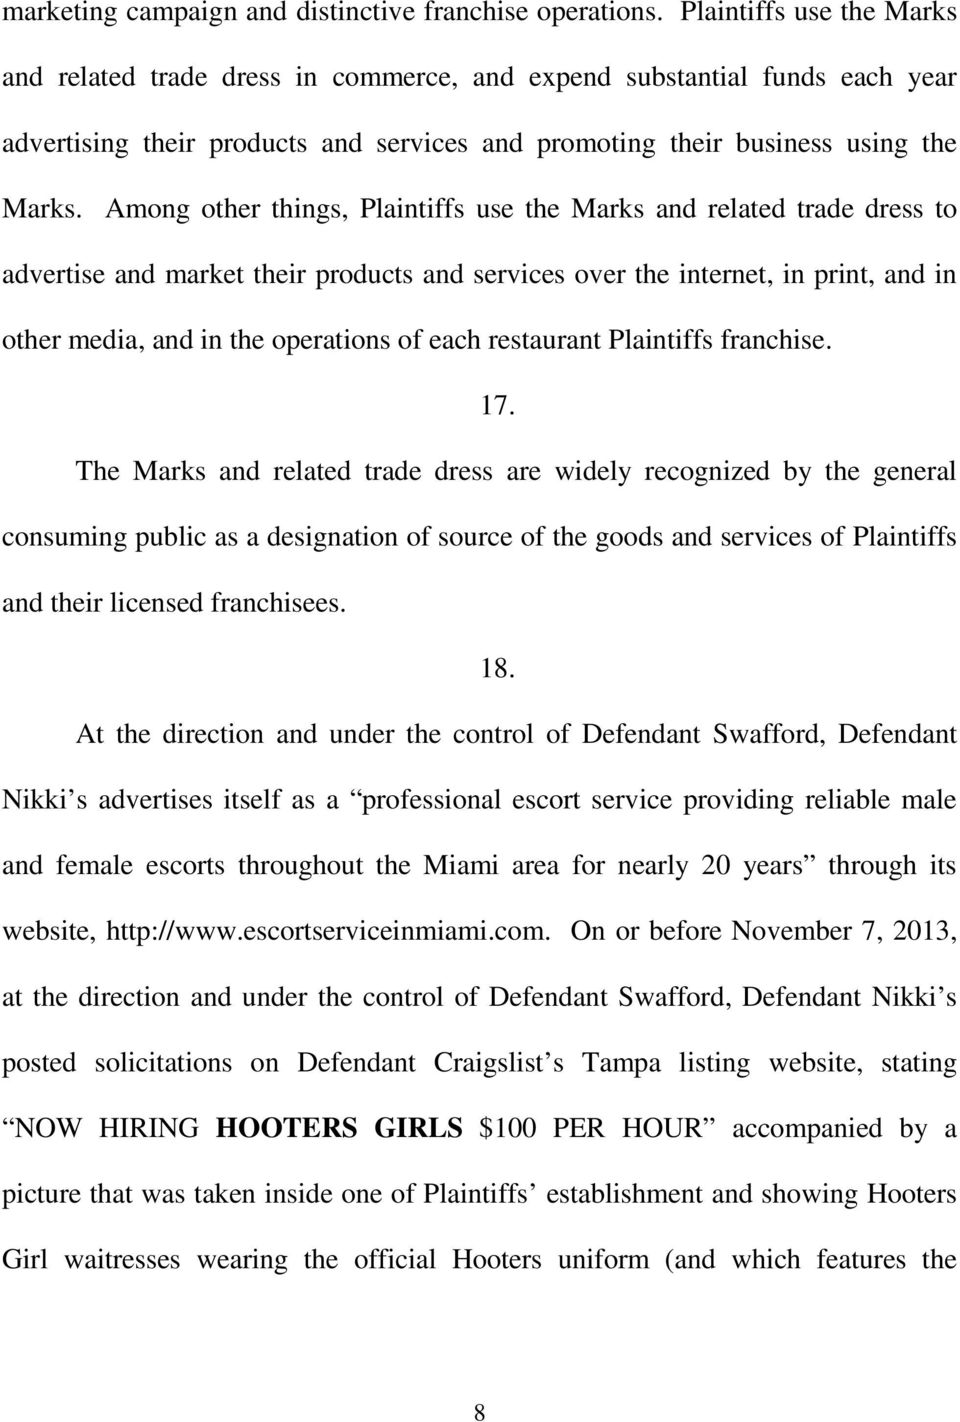 Among other things, Plaintiffs use the Marks and related trade dress to advertise and market their products and services over the internet, in print, and in other media, and in the operations of each